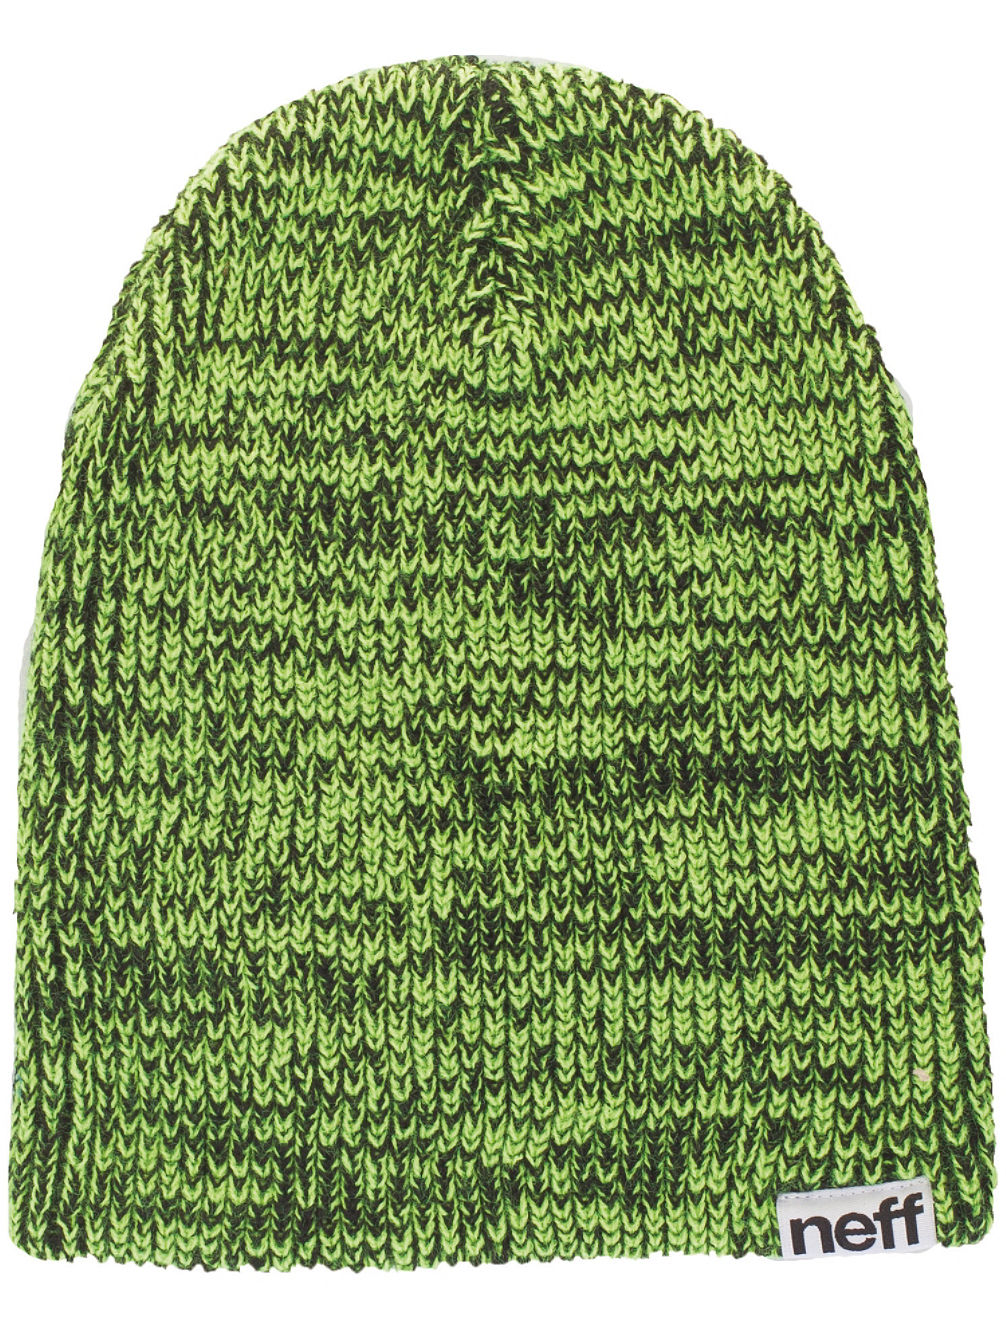 8eed2ebd48874 Buy Neff Slashy Beanie online at Blue Tomato